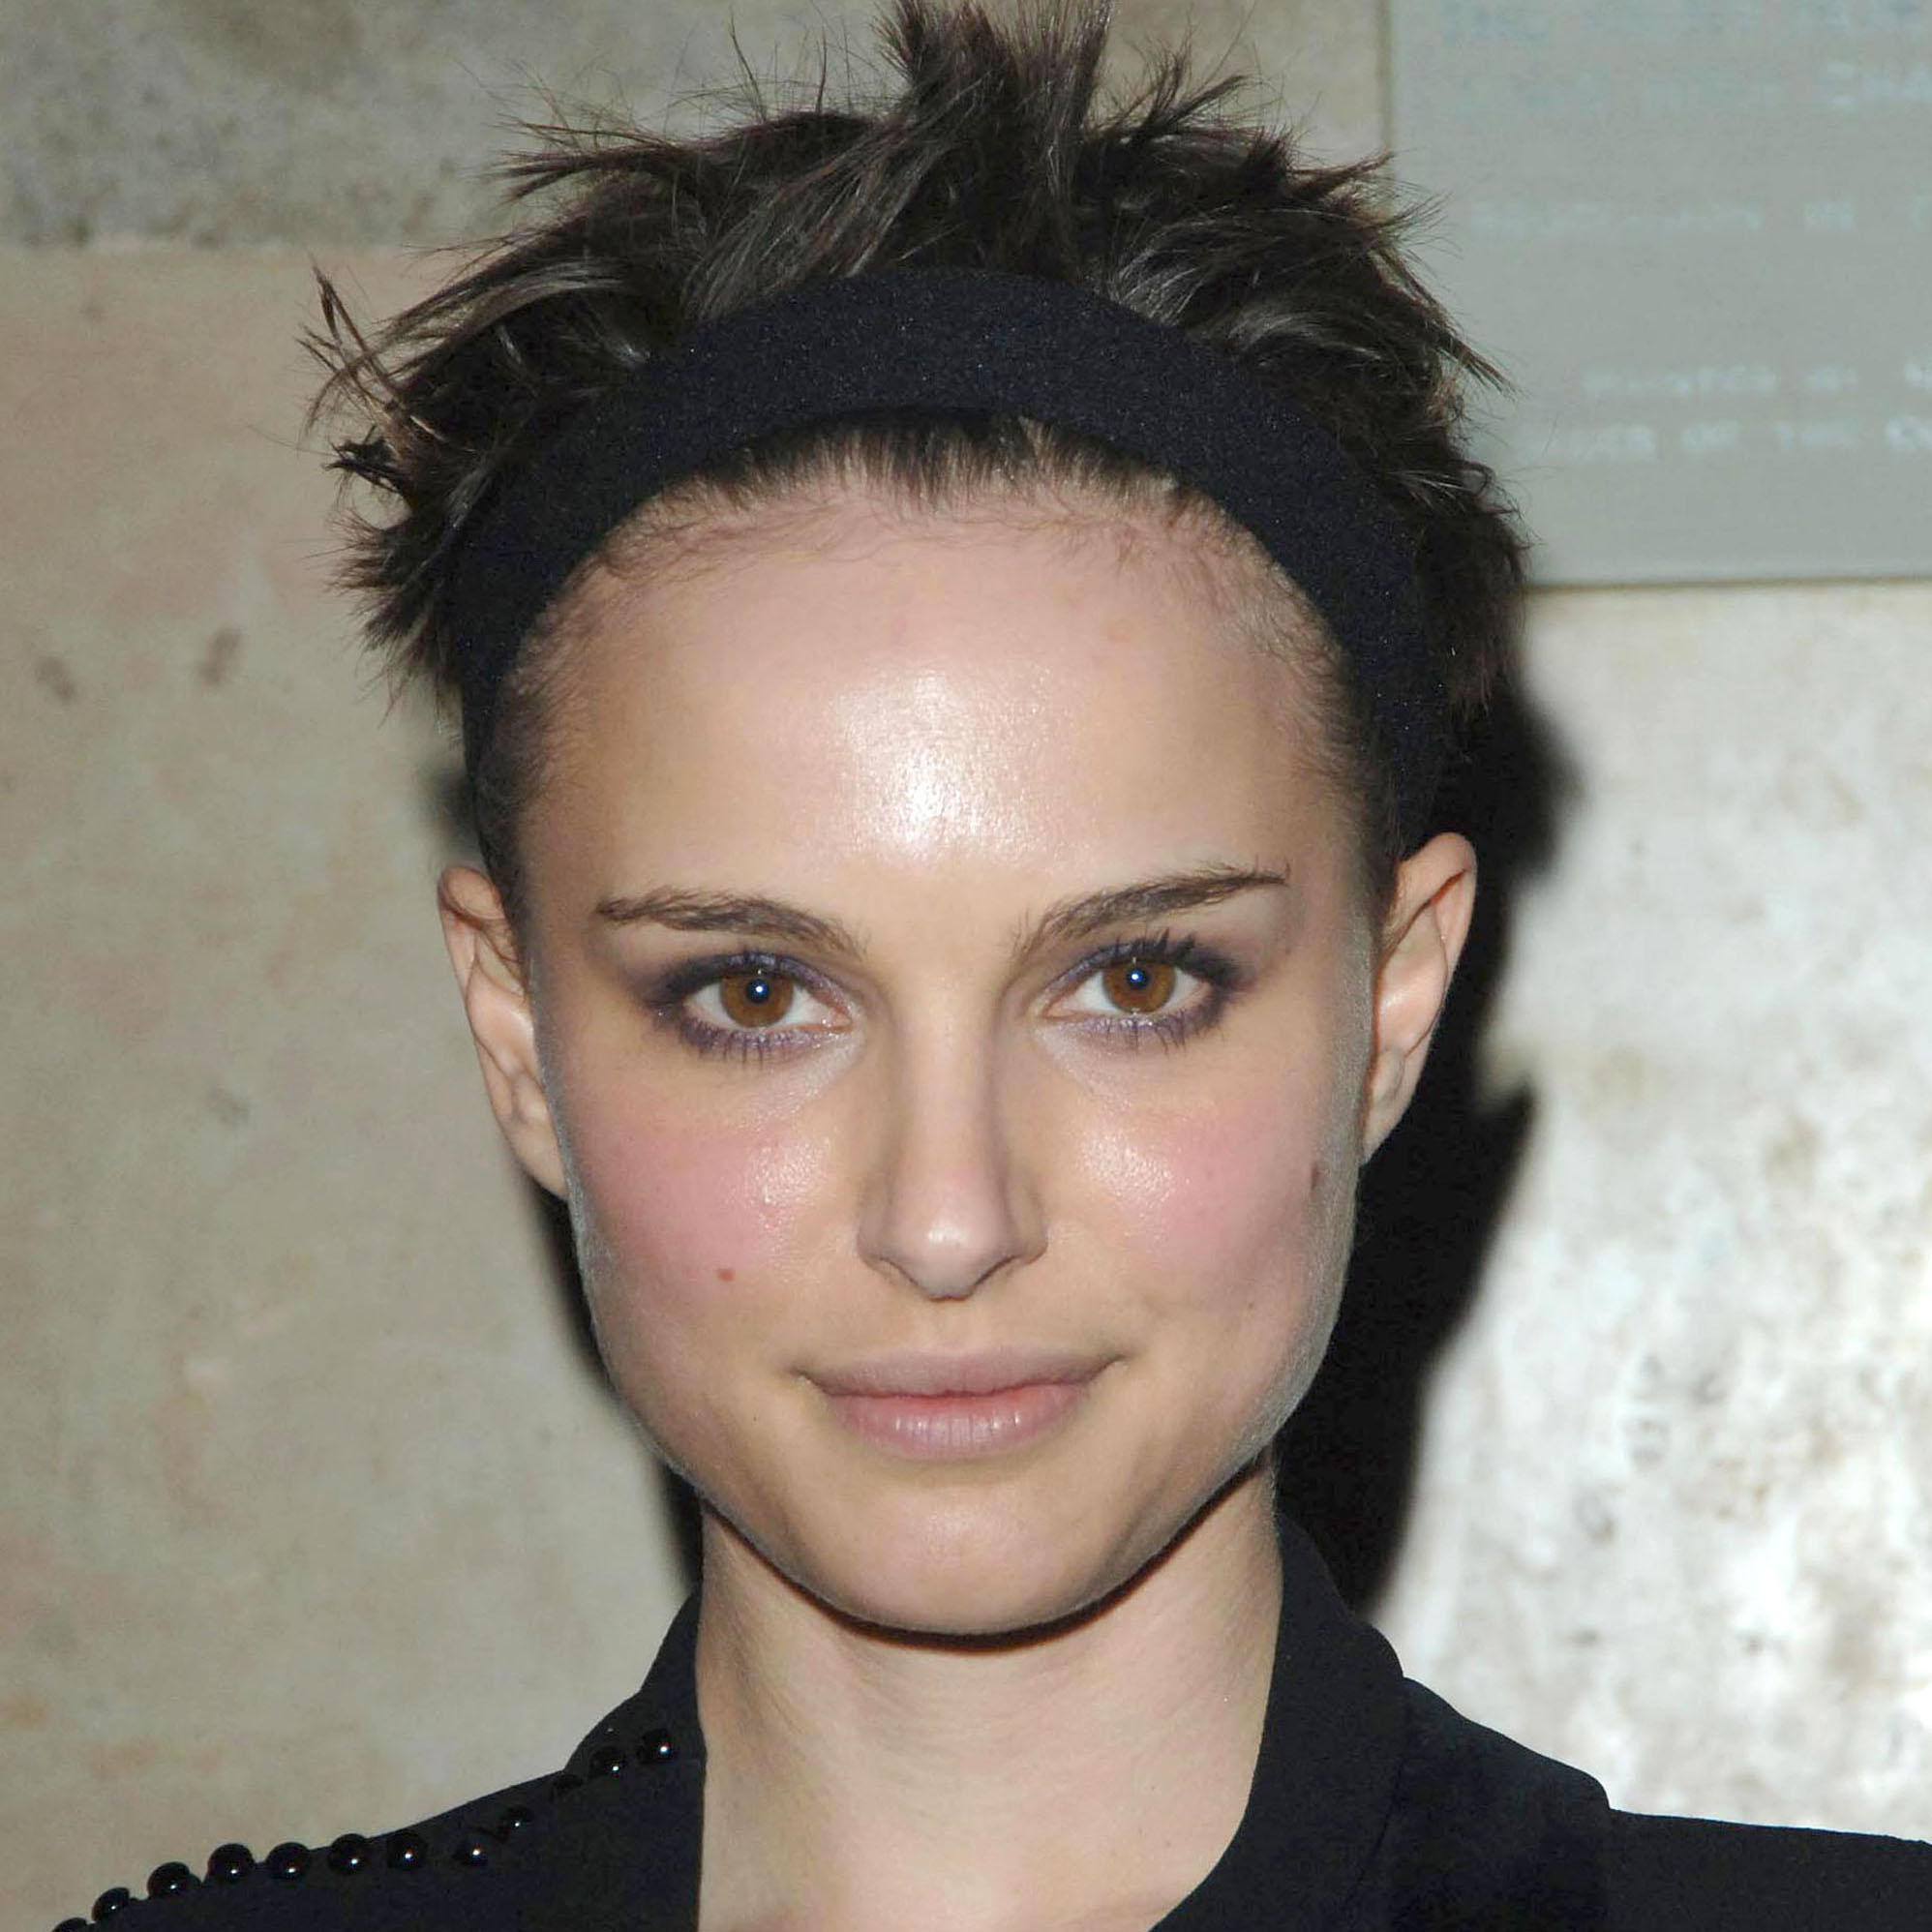 natalie portman plastic surgery photo - 1